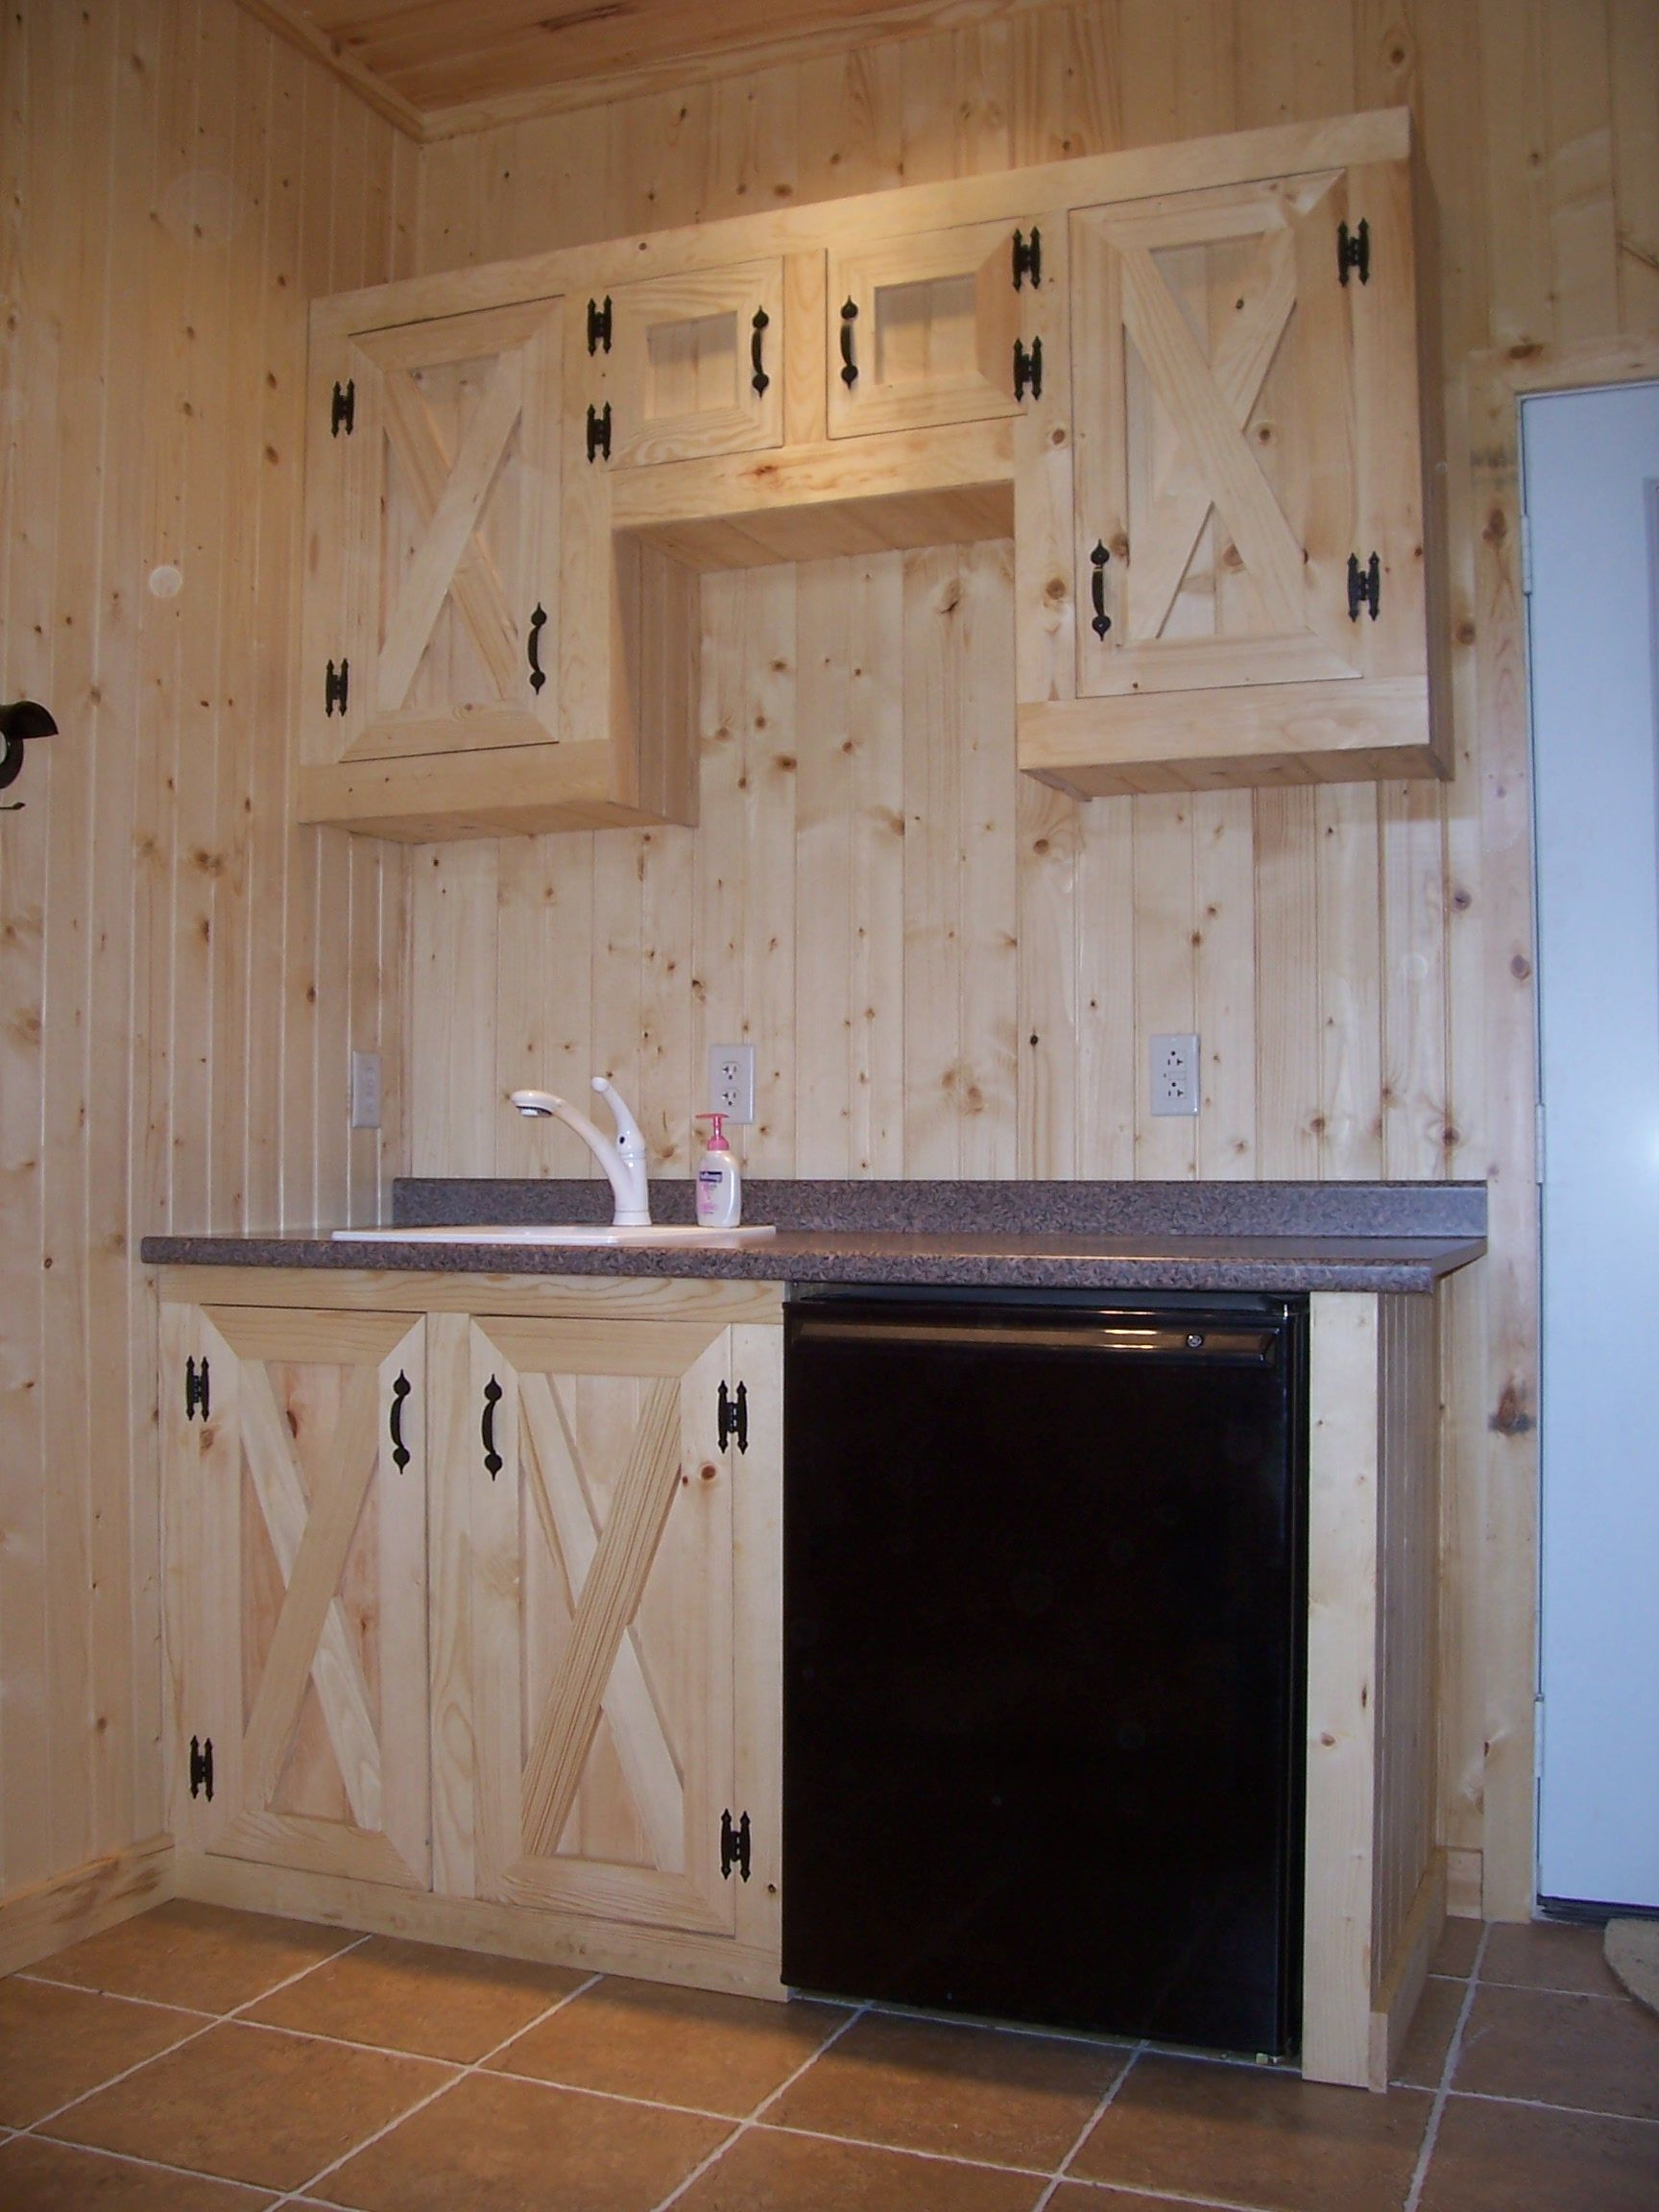 P This Tack Room Features Custom Pine Cabinets A Tile Floor Sink Barn Door Cabinet Tack Room Rustic Kitchen Cabinets